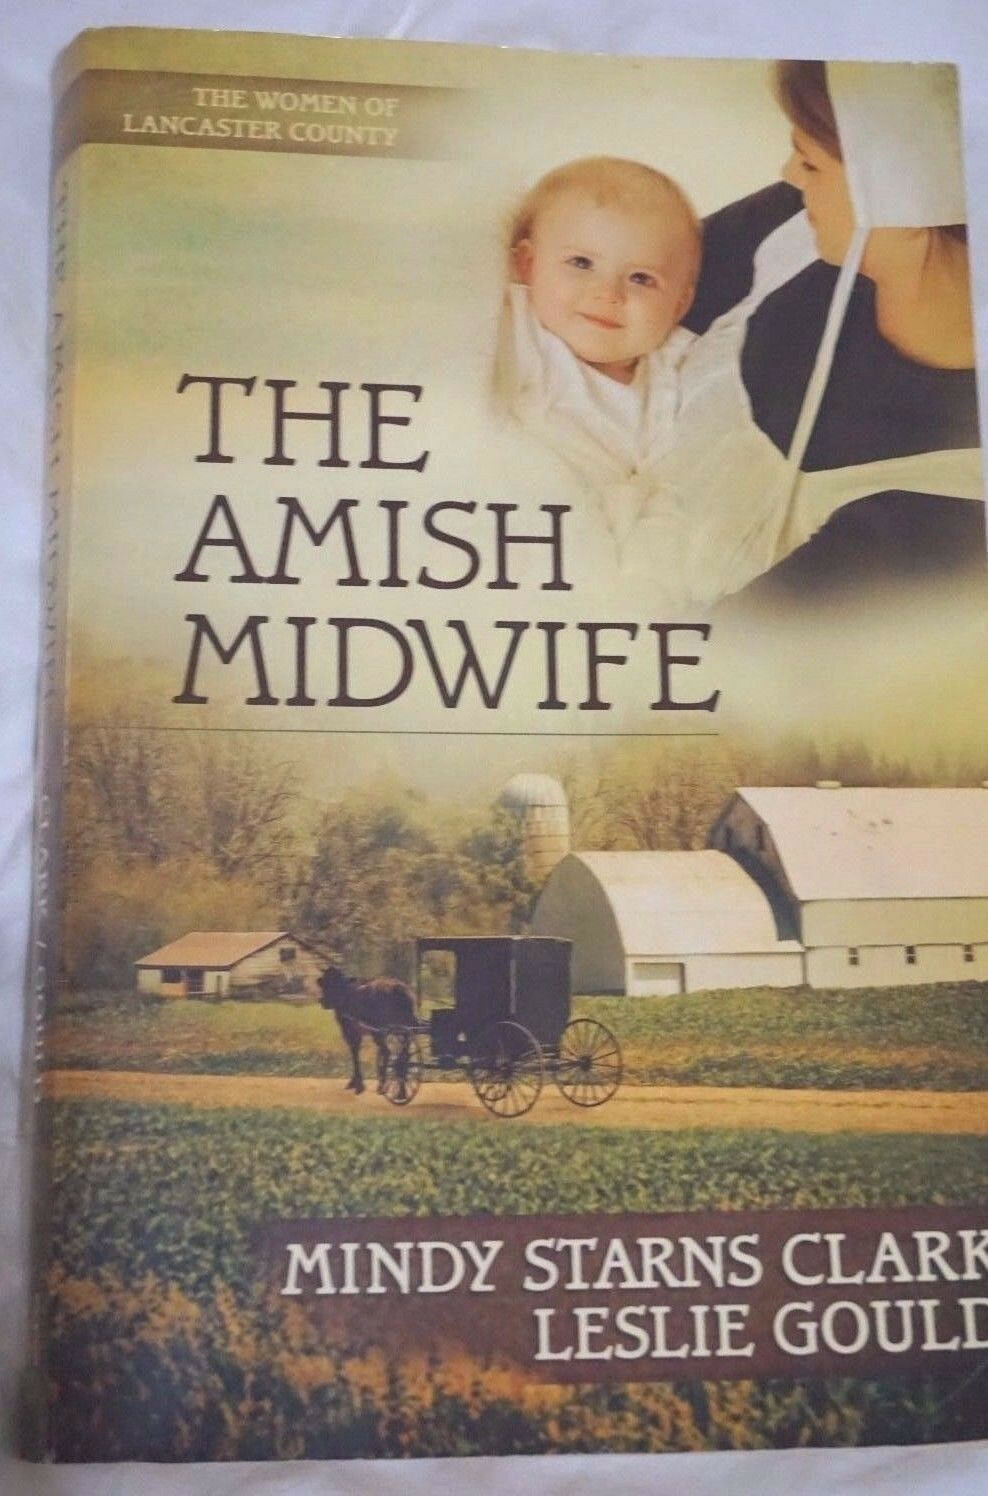 The Women of Lancaster County: The Amish Midwife 1 by Mindy Starns Clark  and Leslie Gould (2011, Paperback)   eBay